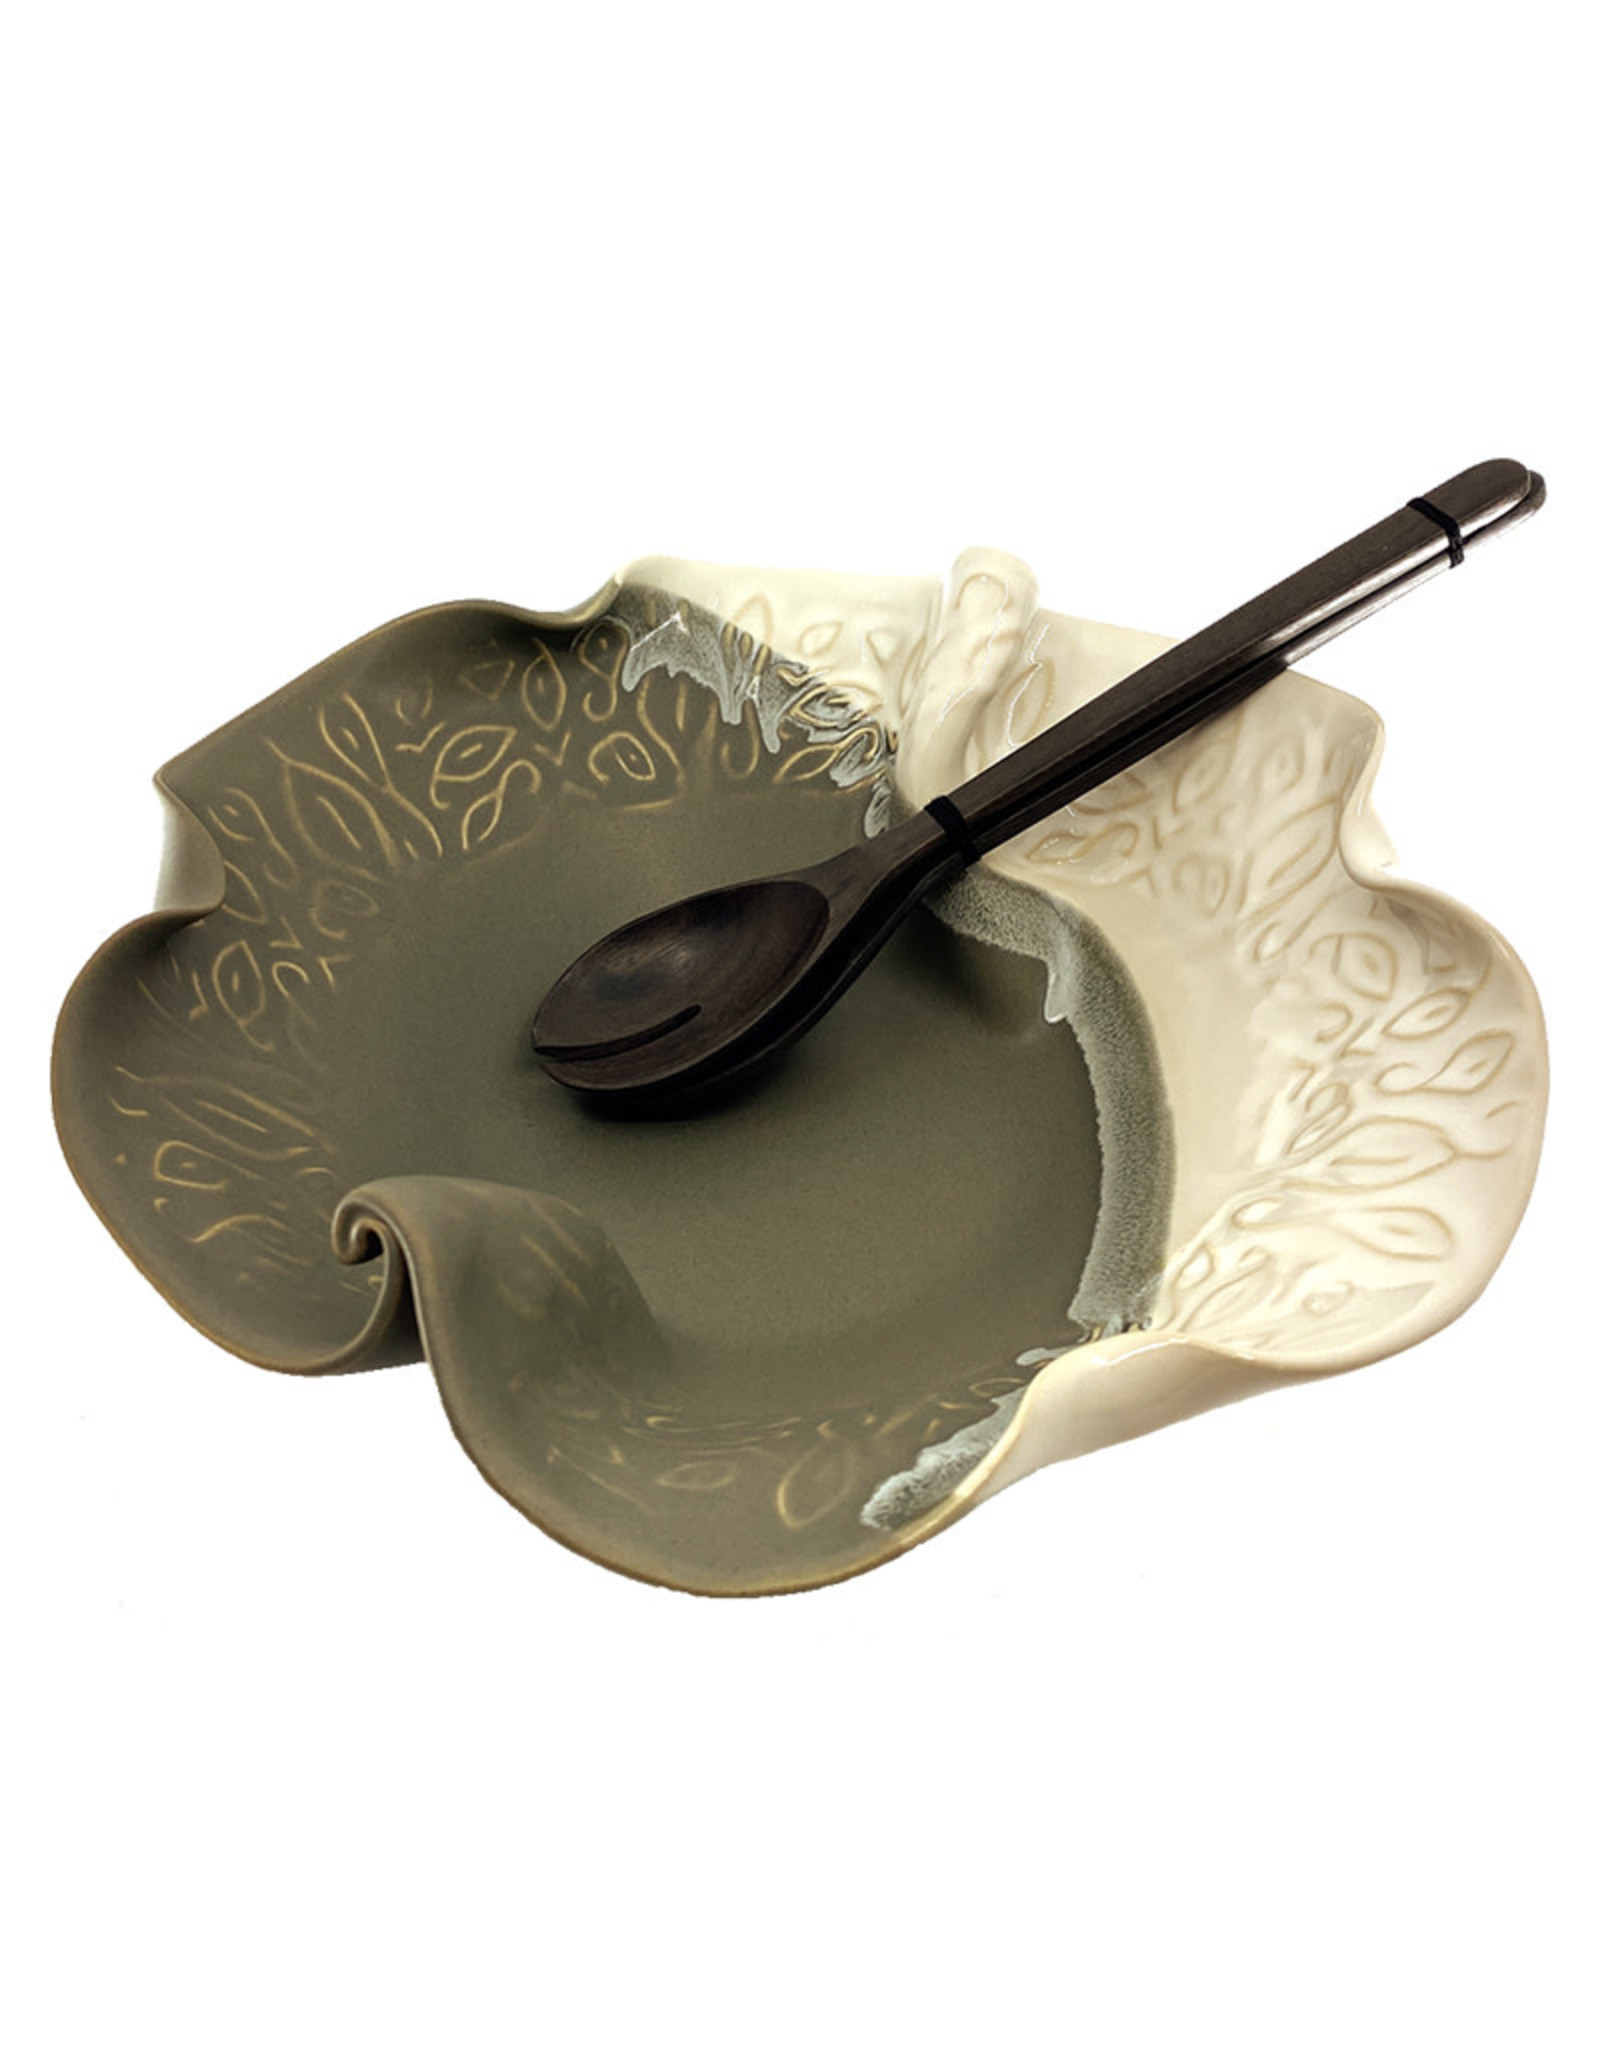 HILBORN POTTERY GRAY & WHITE IN-BETWEEN BOWL WITH SERVERS